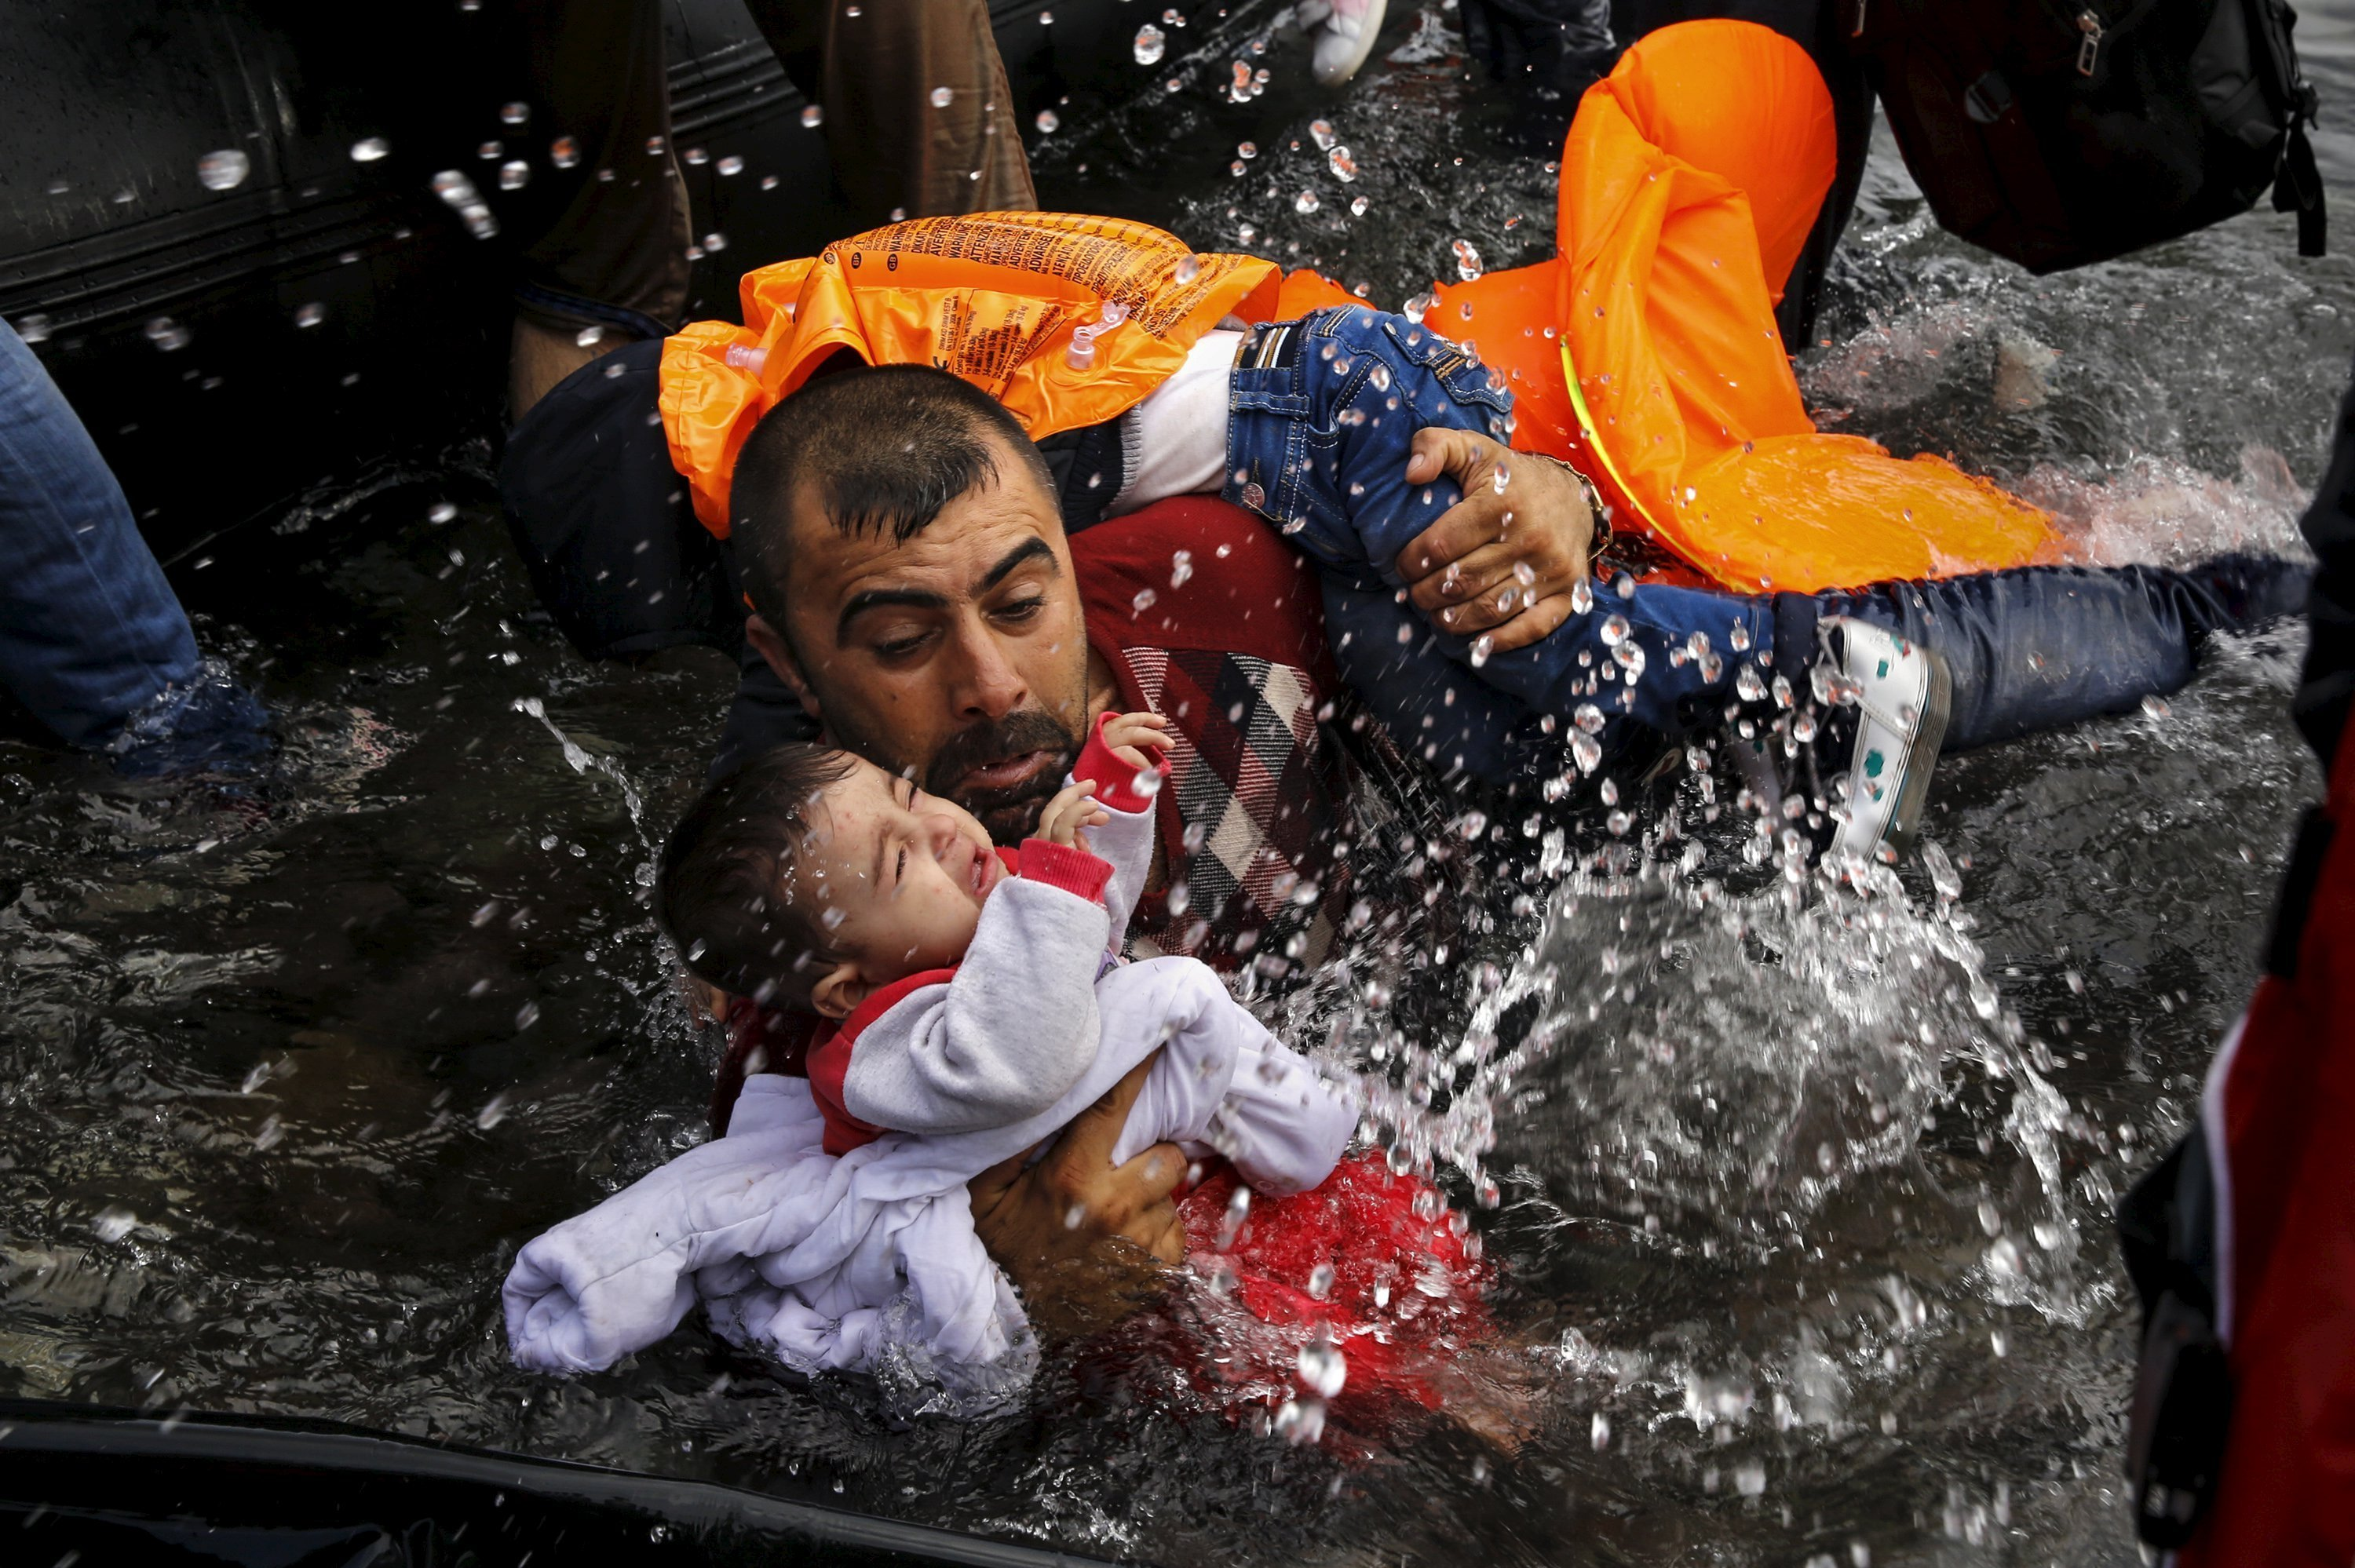 A Syrian refugee holds onto his children as he struggles to walk off a dinghy on the Greek island of Lesbos, after crossing a part of the Aegean Sea from Turkey to Lesbos. file photo